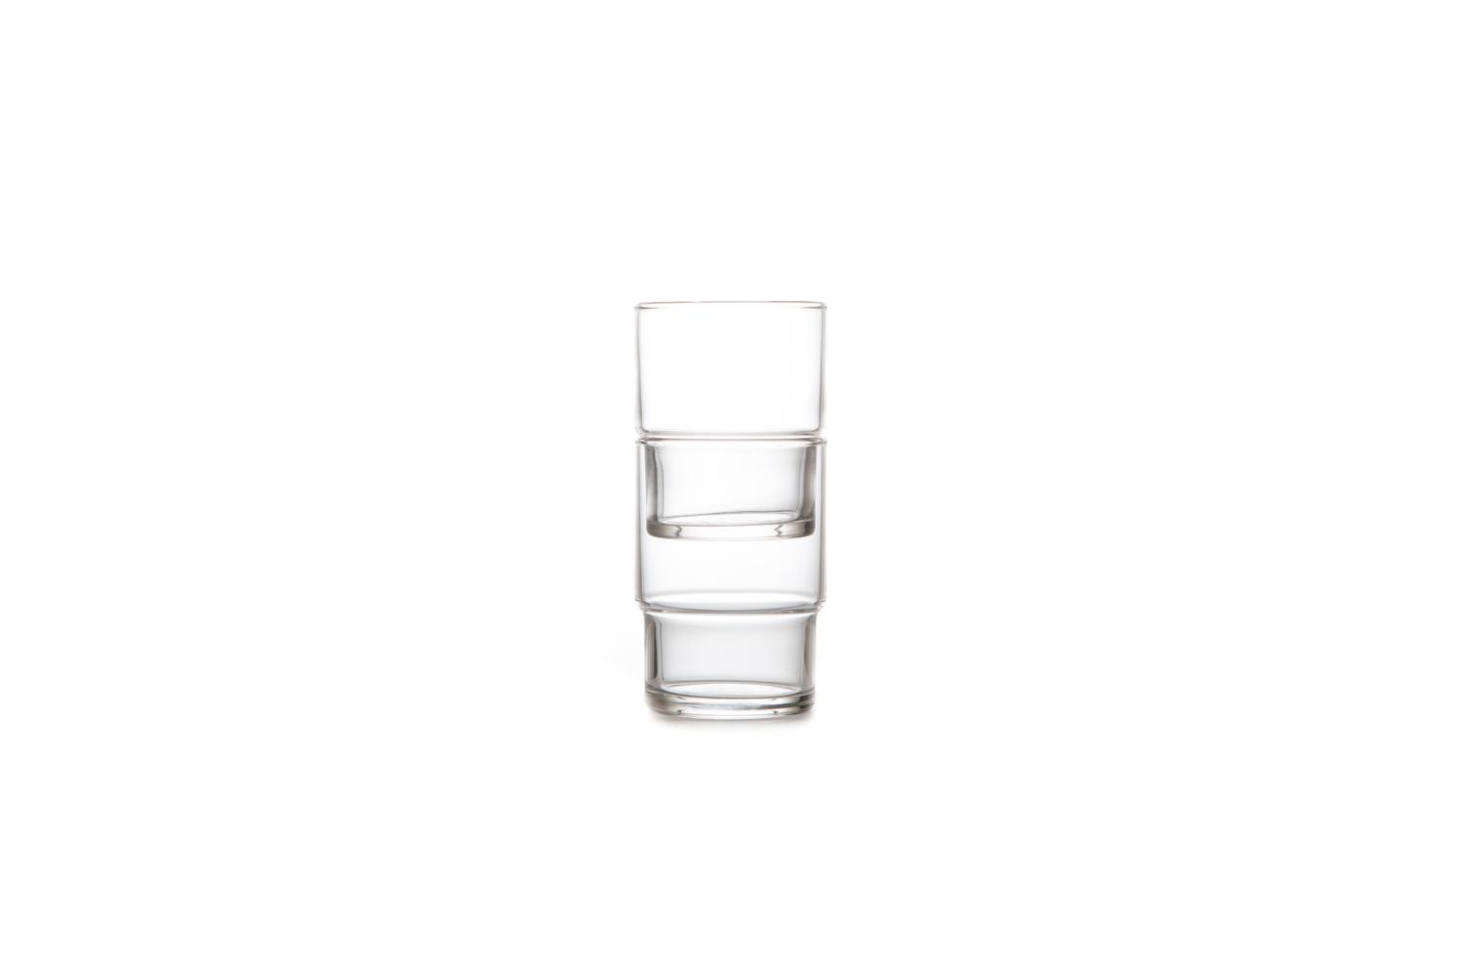 A Remodelista favorite, the Toyo-Sasaki HS Stackable Glass Tumbler is dishwasher safe and saves space thanks to the stackable design; $40.84 for a 6-piece set on Amazon.